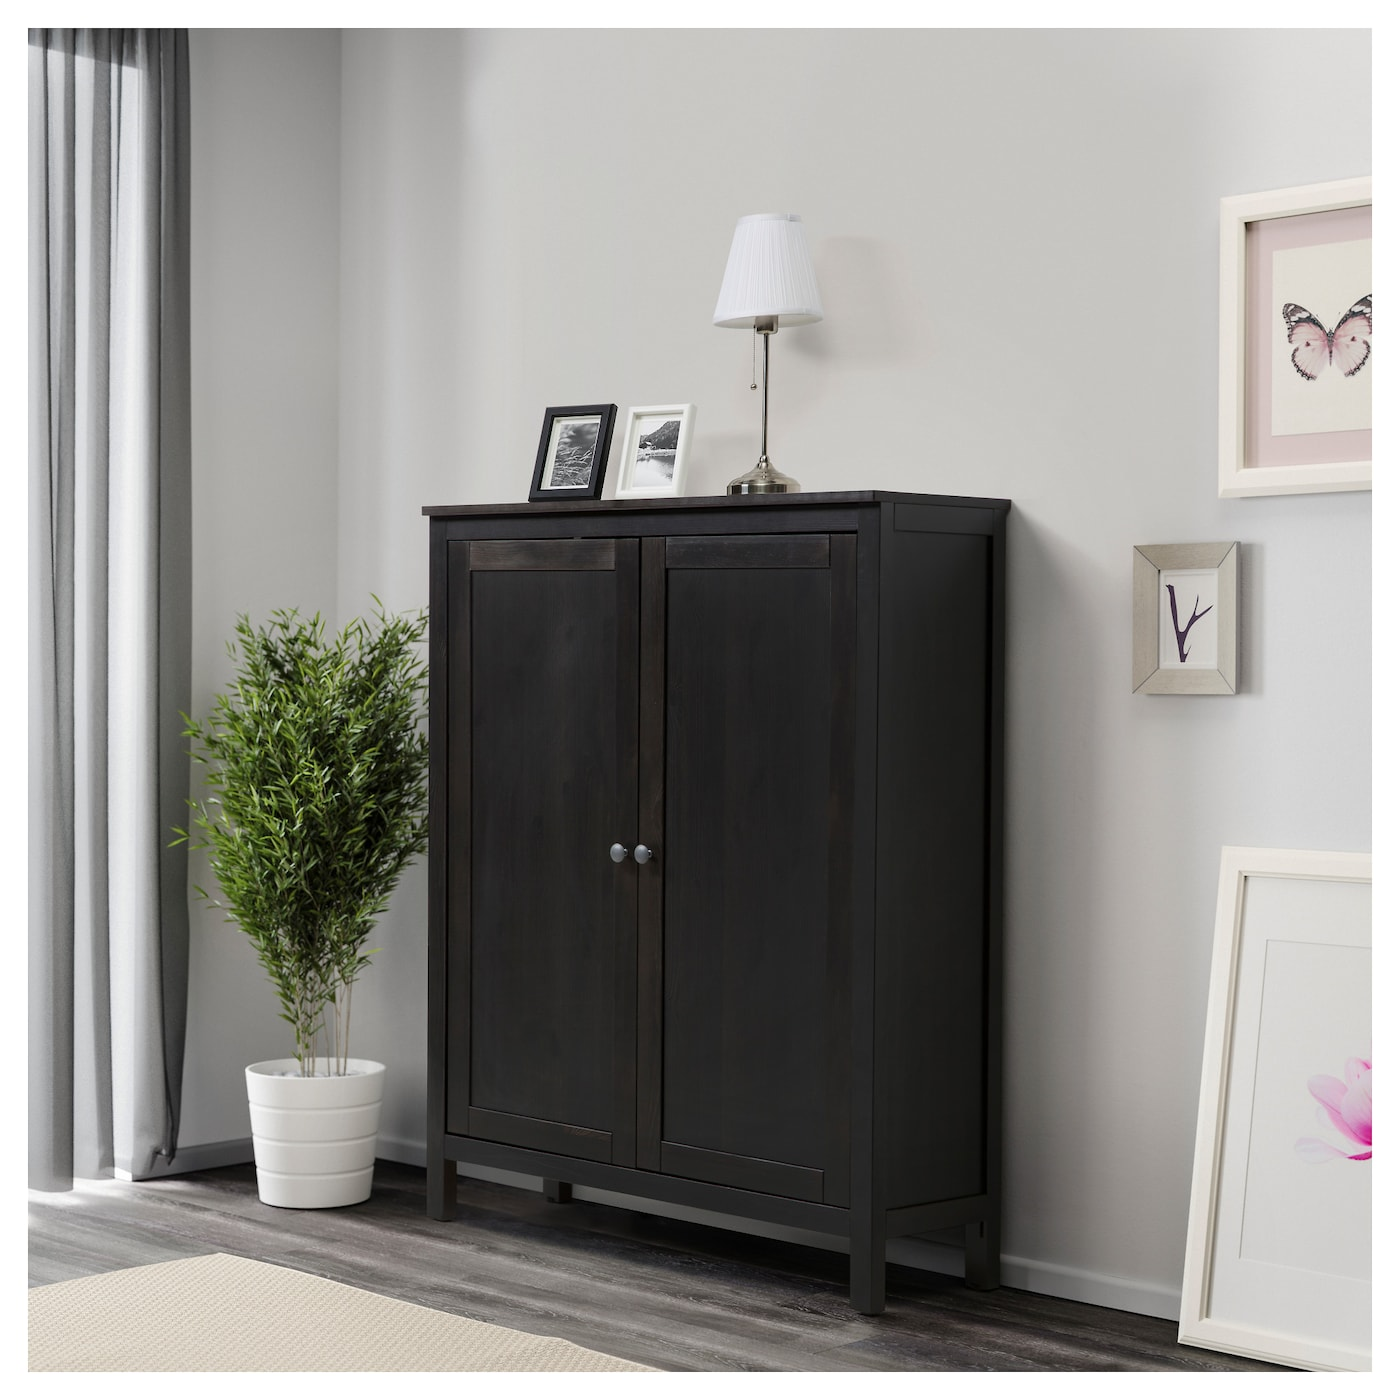 Hemnes cabinet with 2 doors black brown 99x130 cm ikea - Ikea cabinet doors on existing cabinets ...